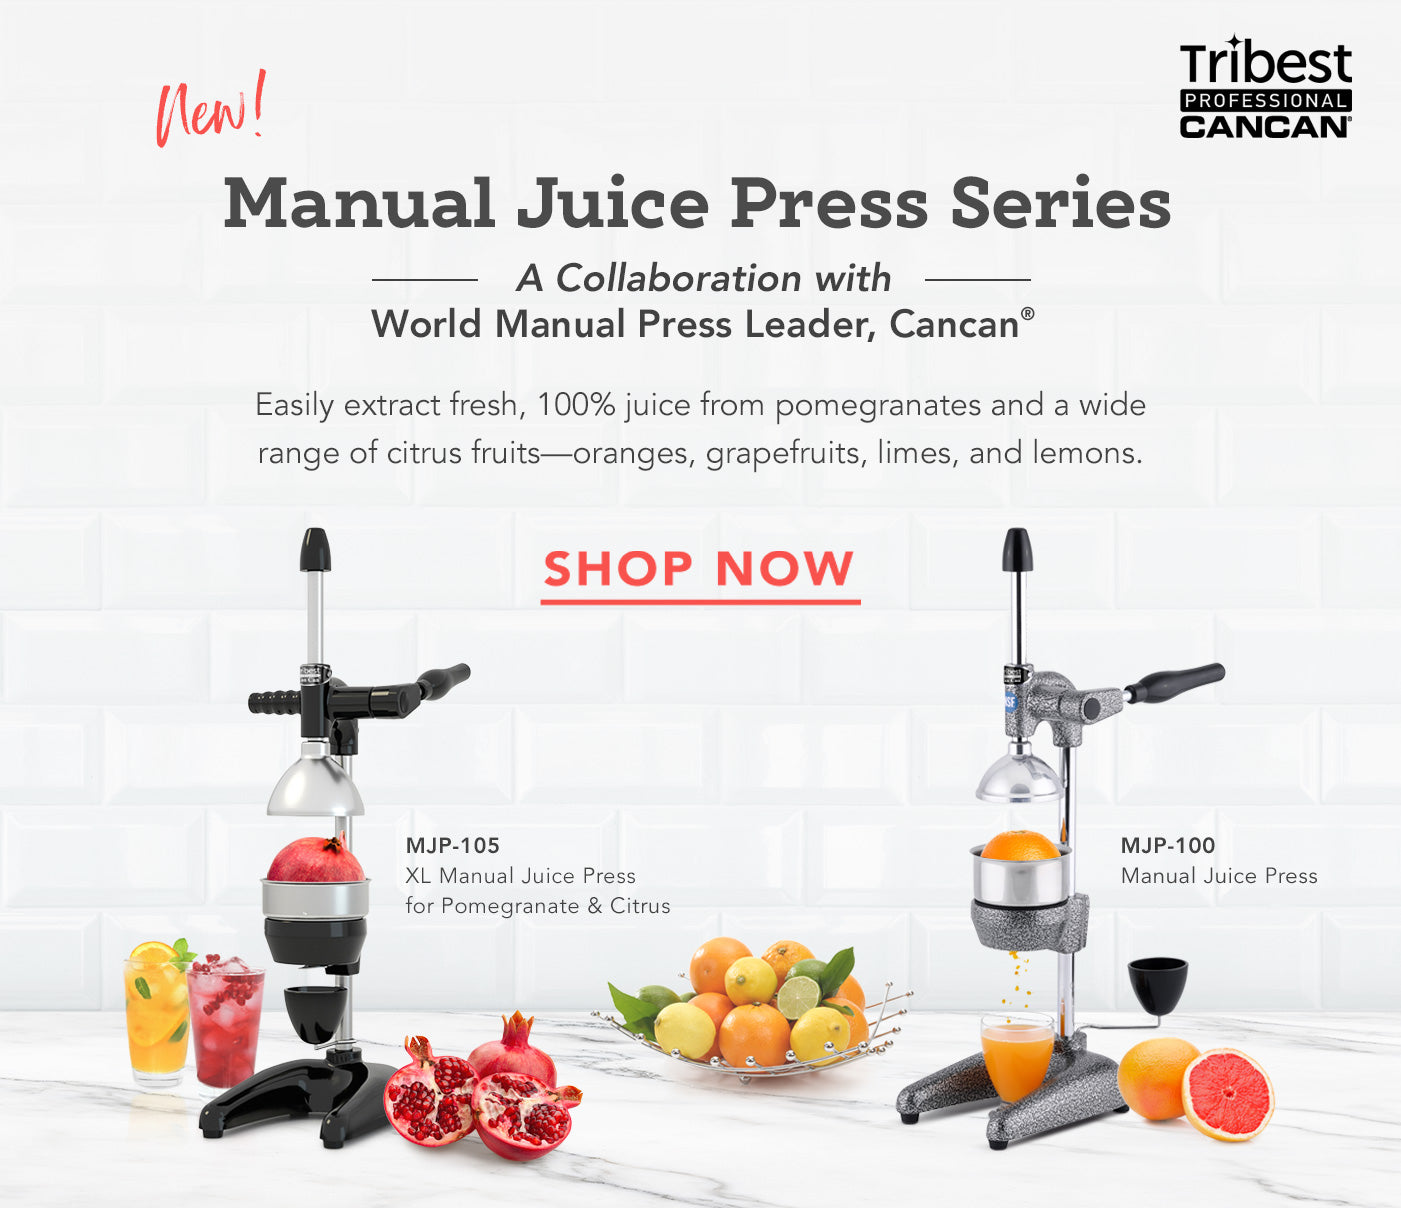 Tribest Professional Cancan Manual Juice Press Series Banner